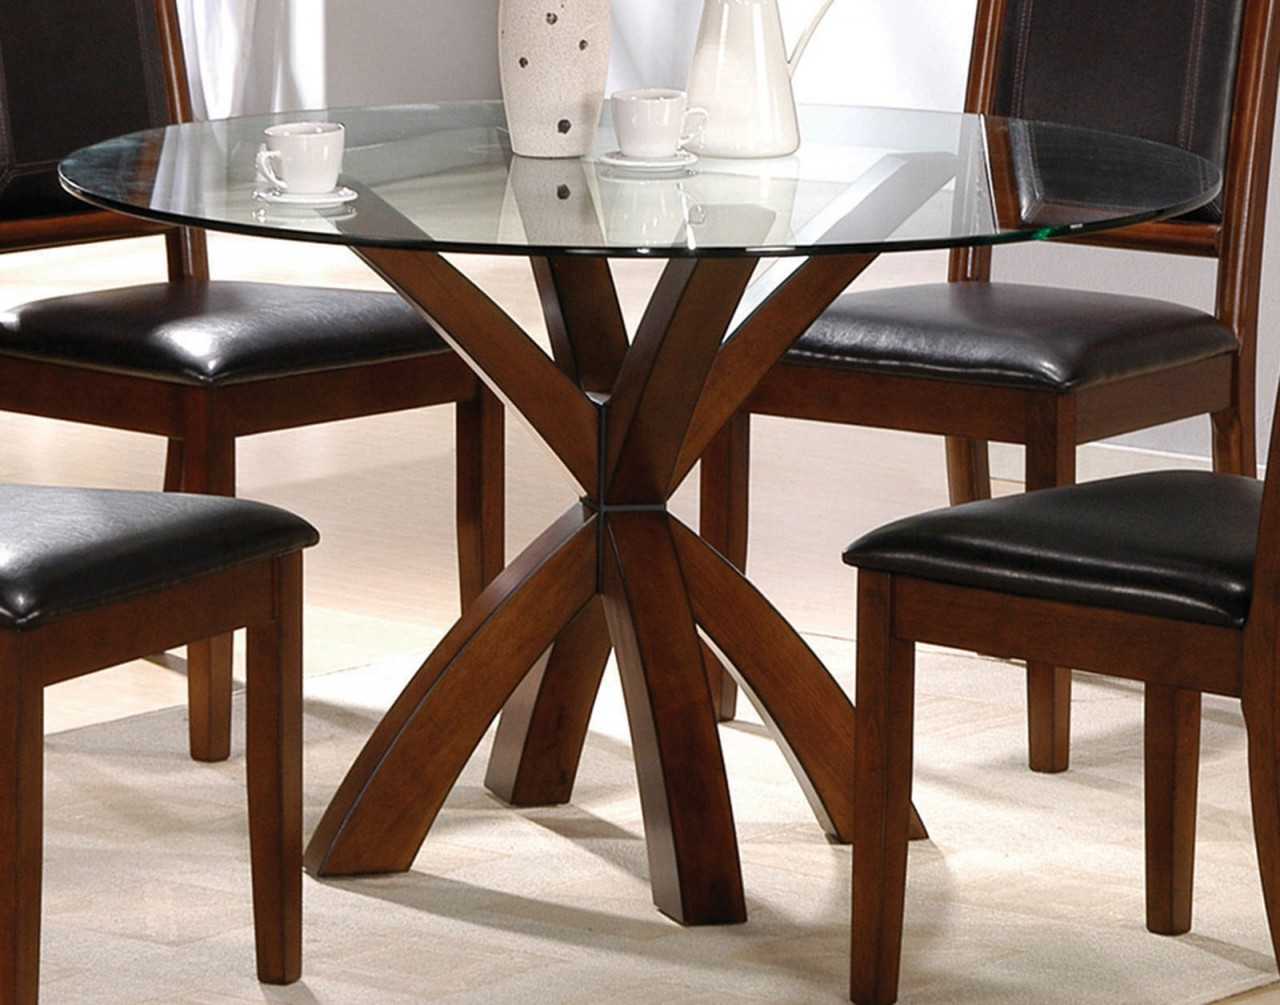 Interior Furniture Of Round Dining Table With Glass On Top Surface And  Black Four Chairs Part 20